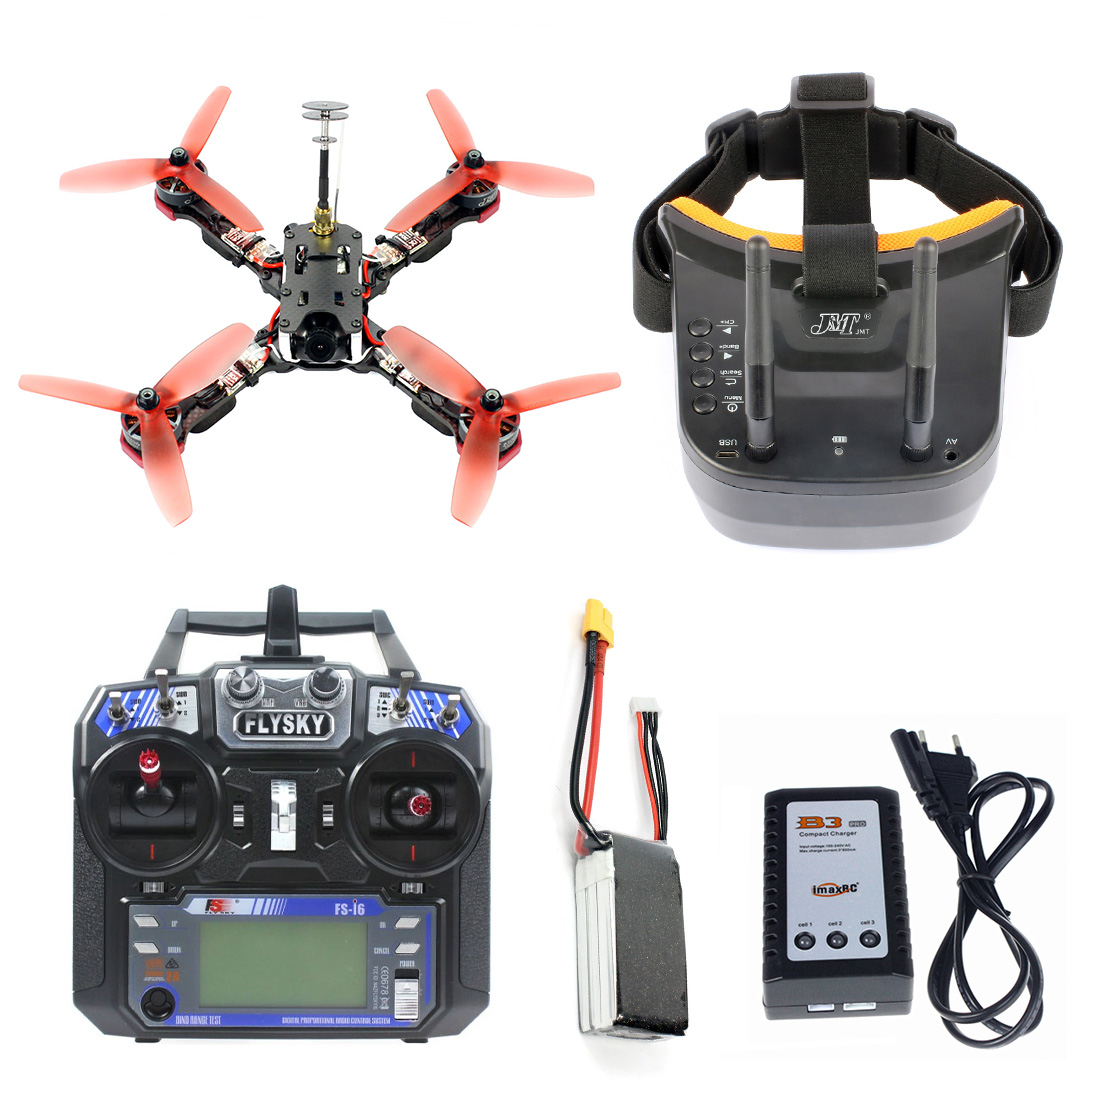 218mm 2.4G 6CH RC Racing Quadcopter RTF Betaflight F4 Pro V2 BLHeli-s 30A 5.8G 25/200/400mW VTX Mini 700TVL Camera FPV Drone image